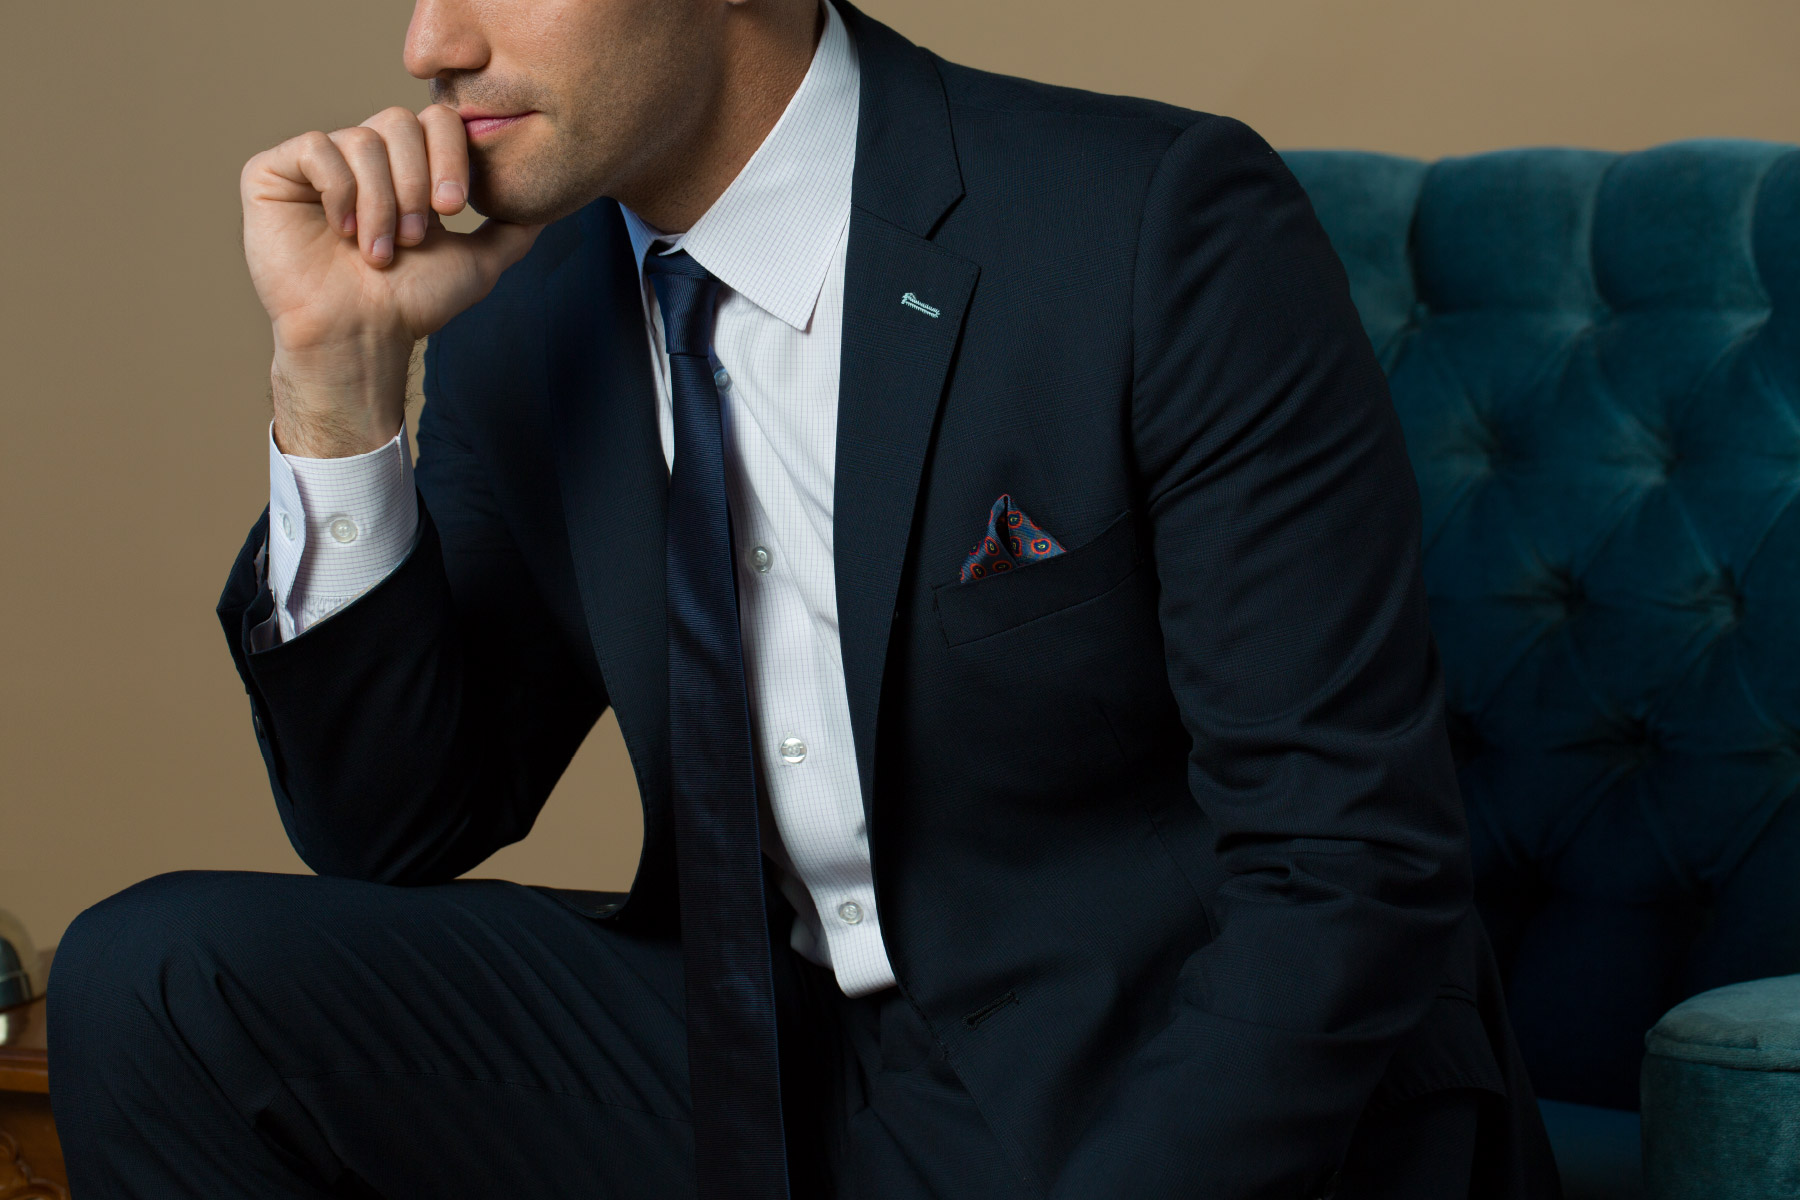 Man wearing elegant navy suit